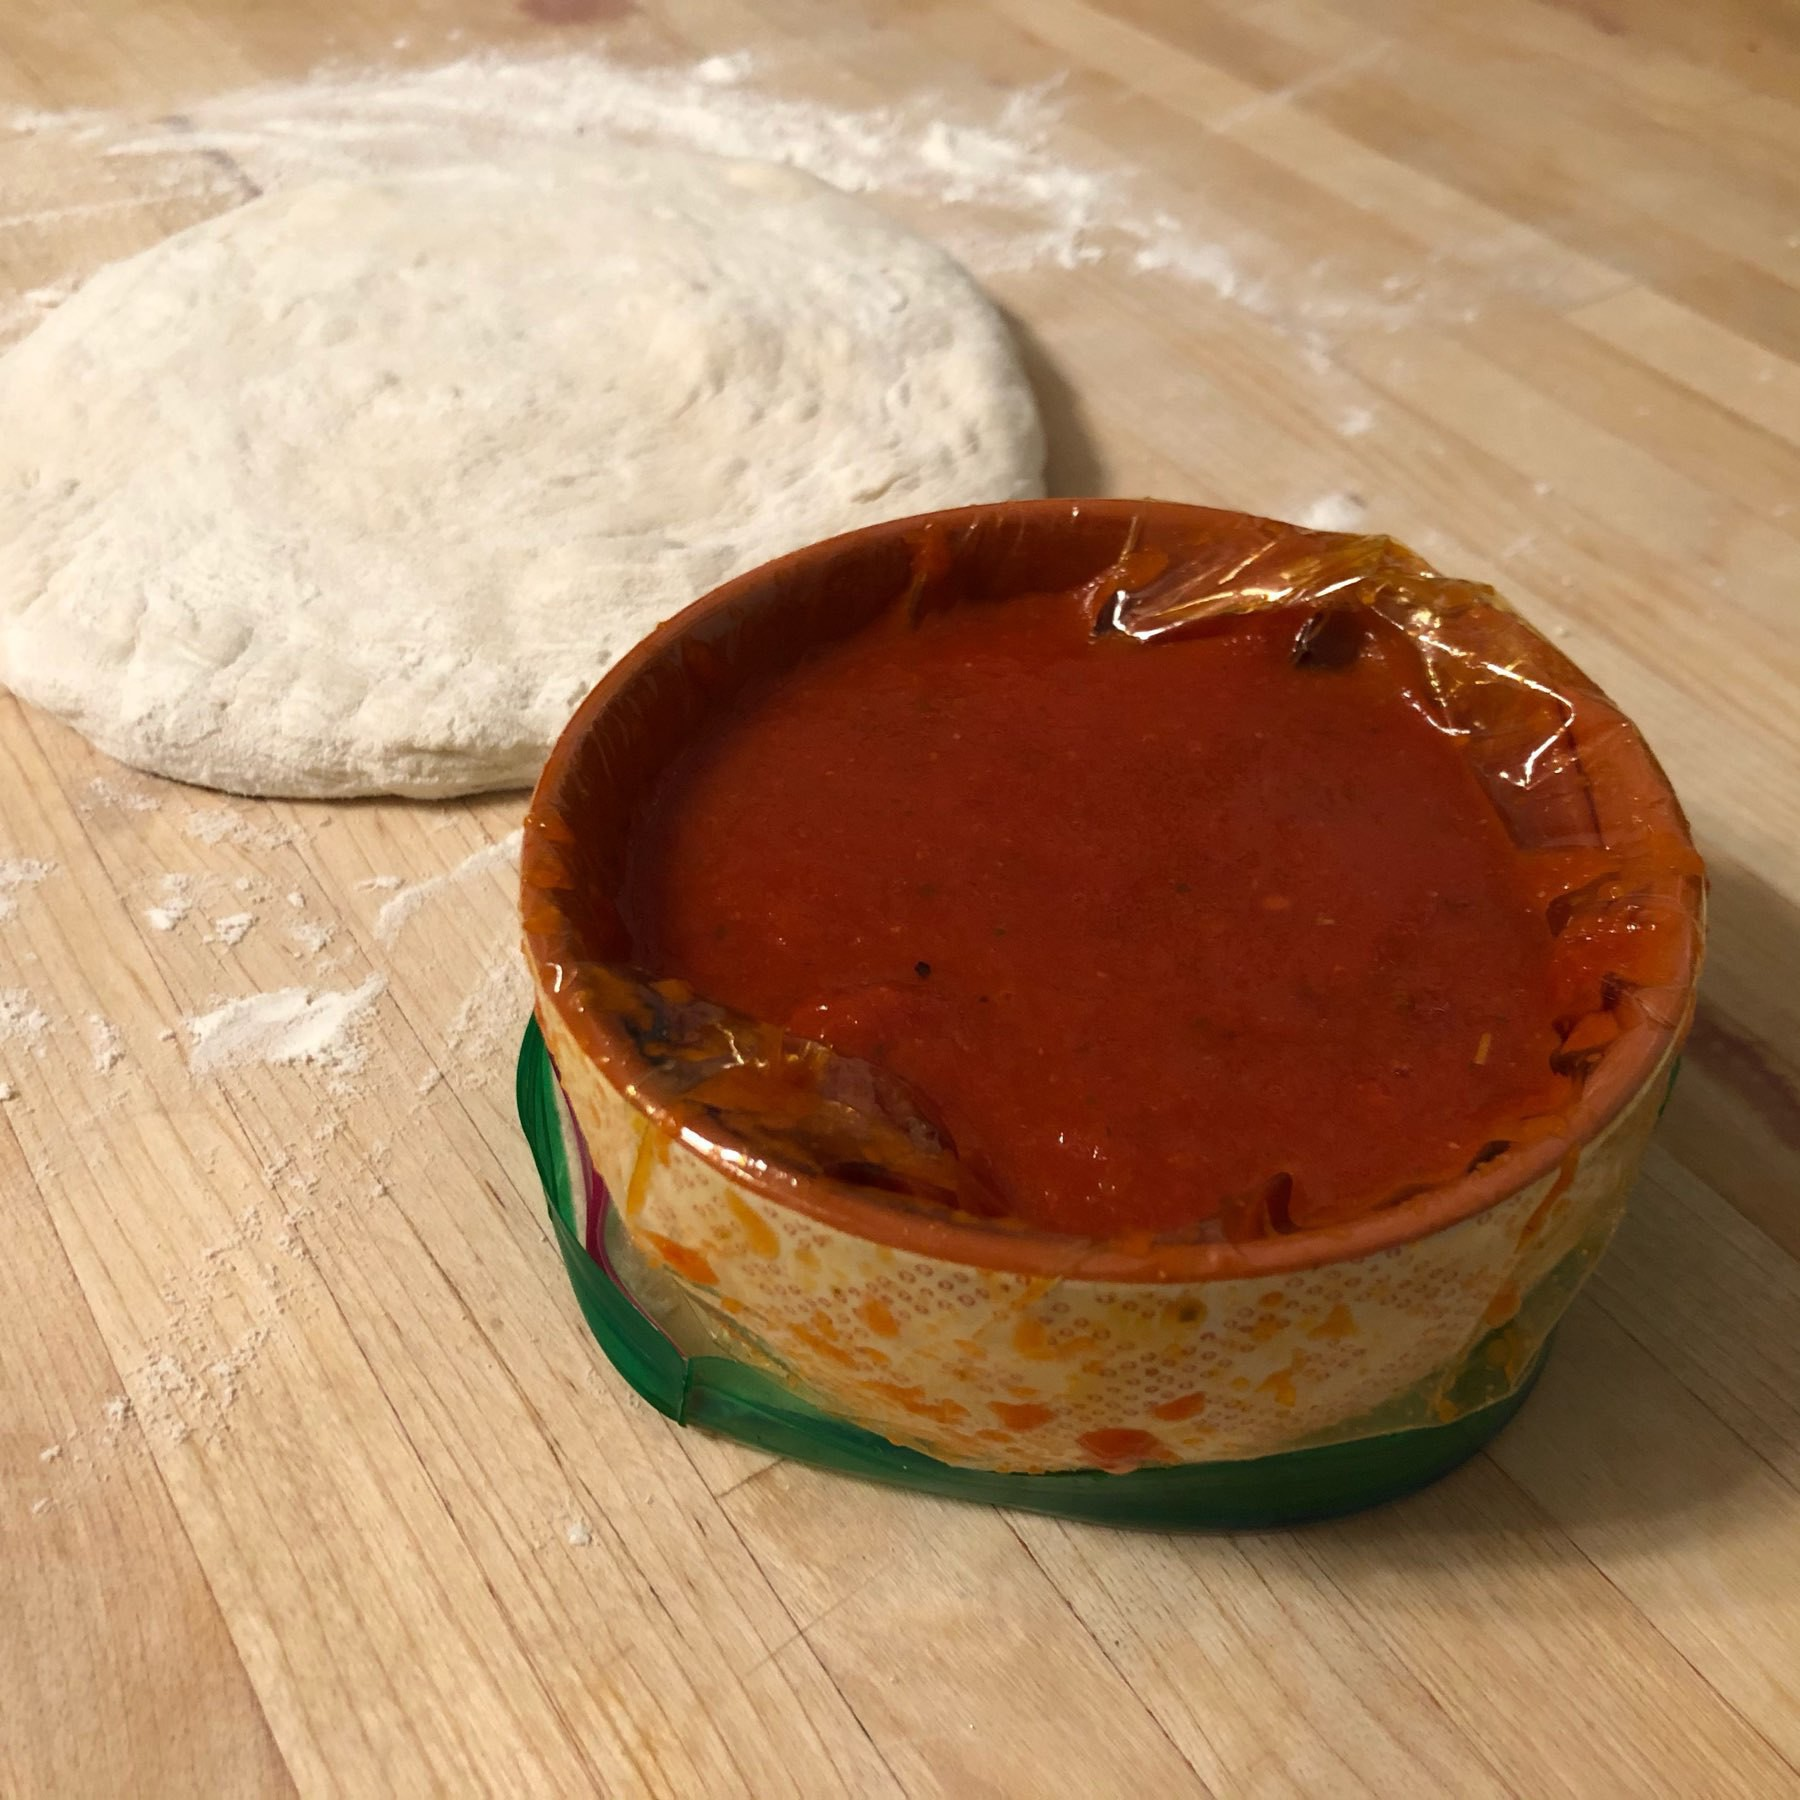 ceramic bowl with platic ziploc bag fit to hold thawed sauce